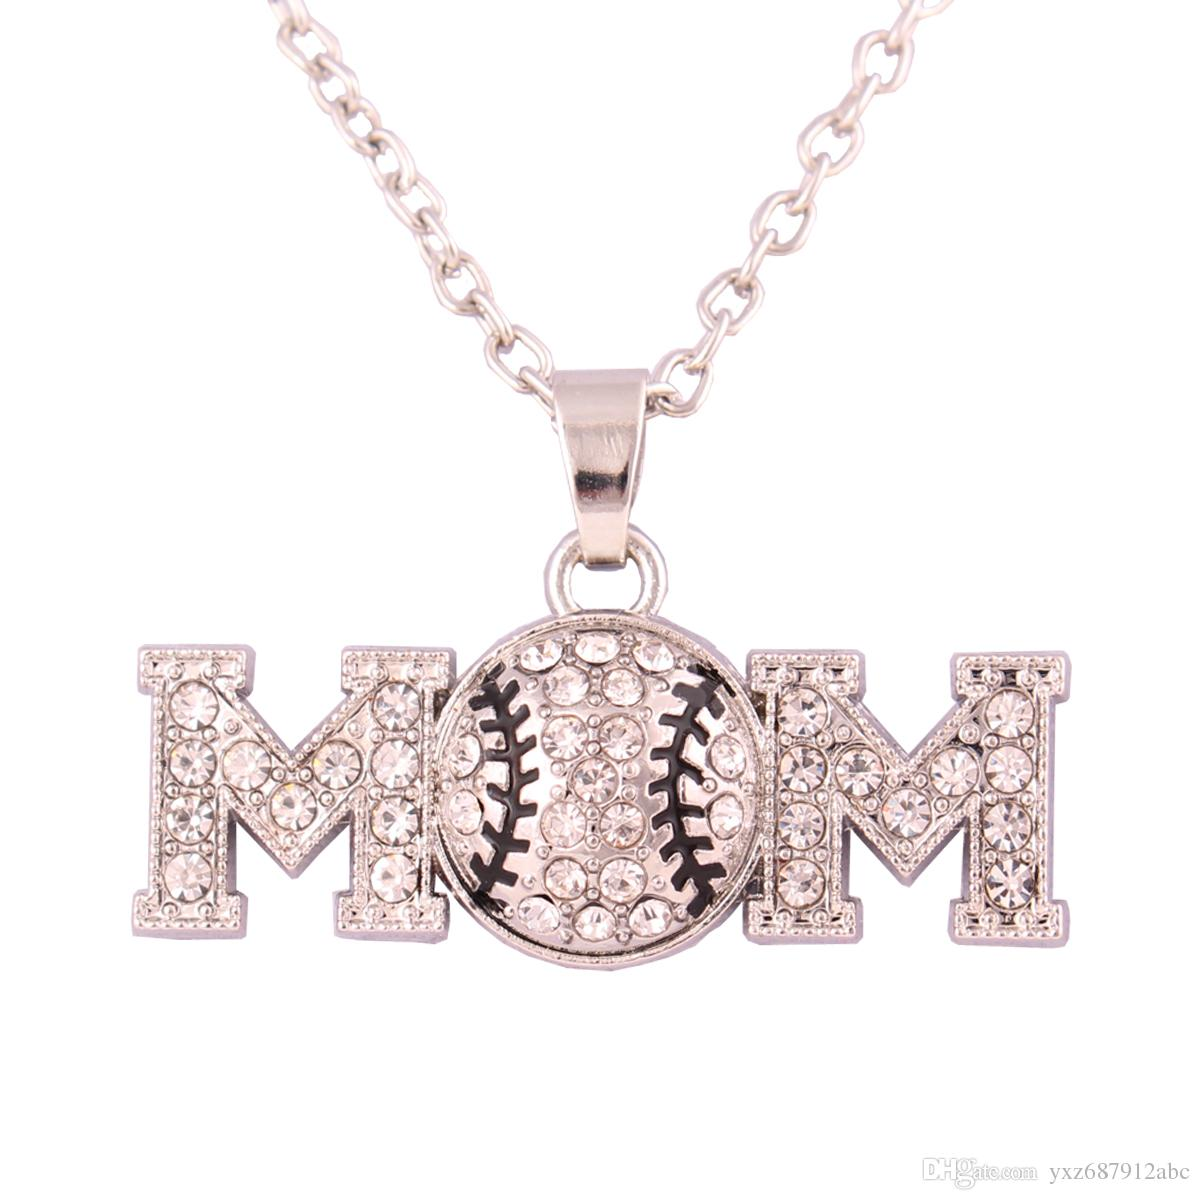 Sporty Rhinestone Baseball Mom Pendent Necklace Gift for Her / Gift Under Ten Clear Crystals with Black Enamel